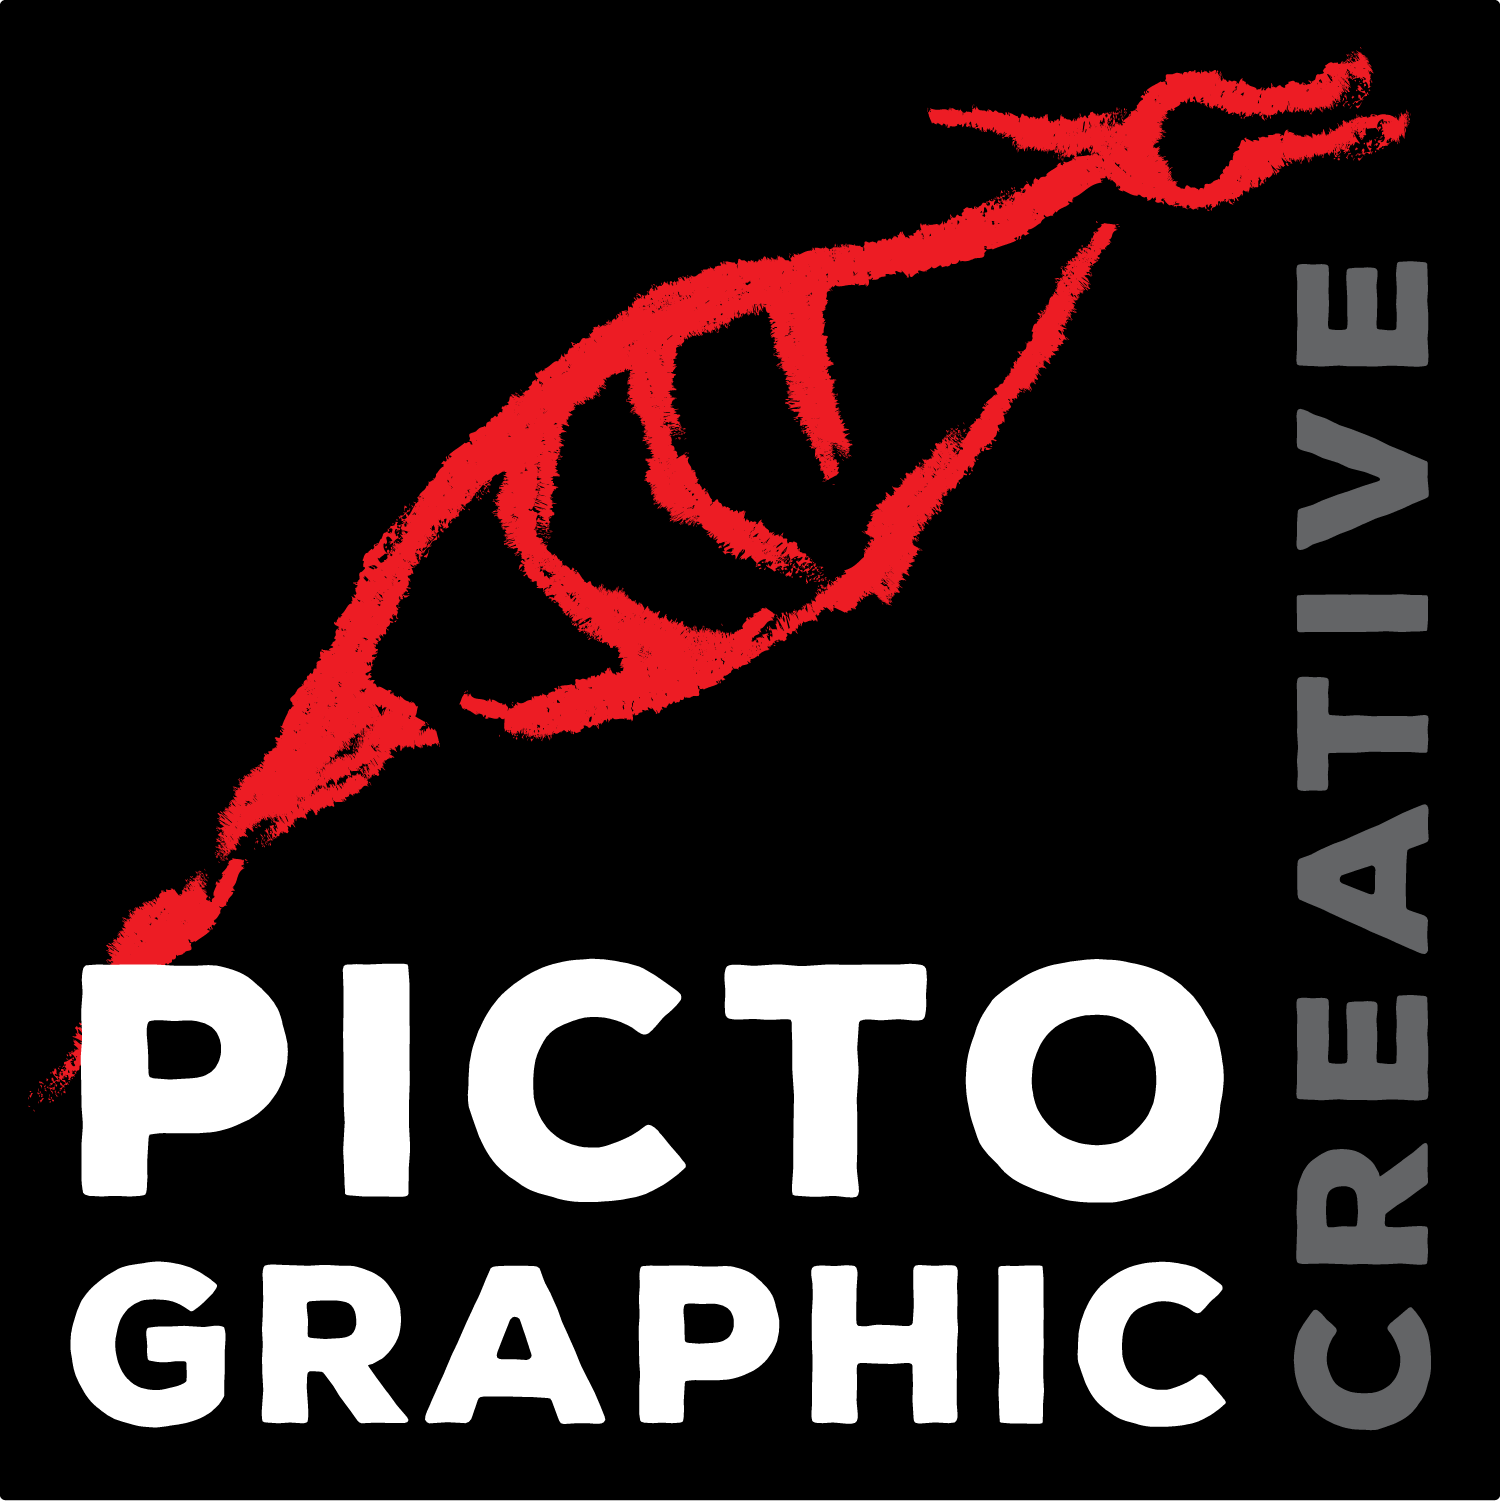 Pictographic Creative